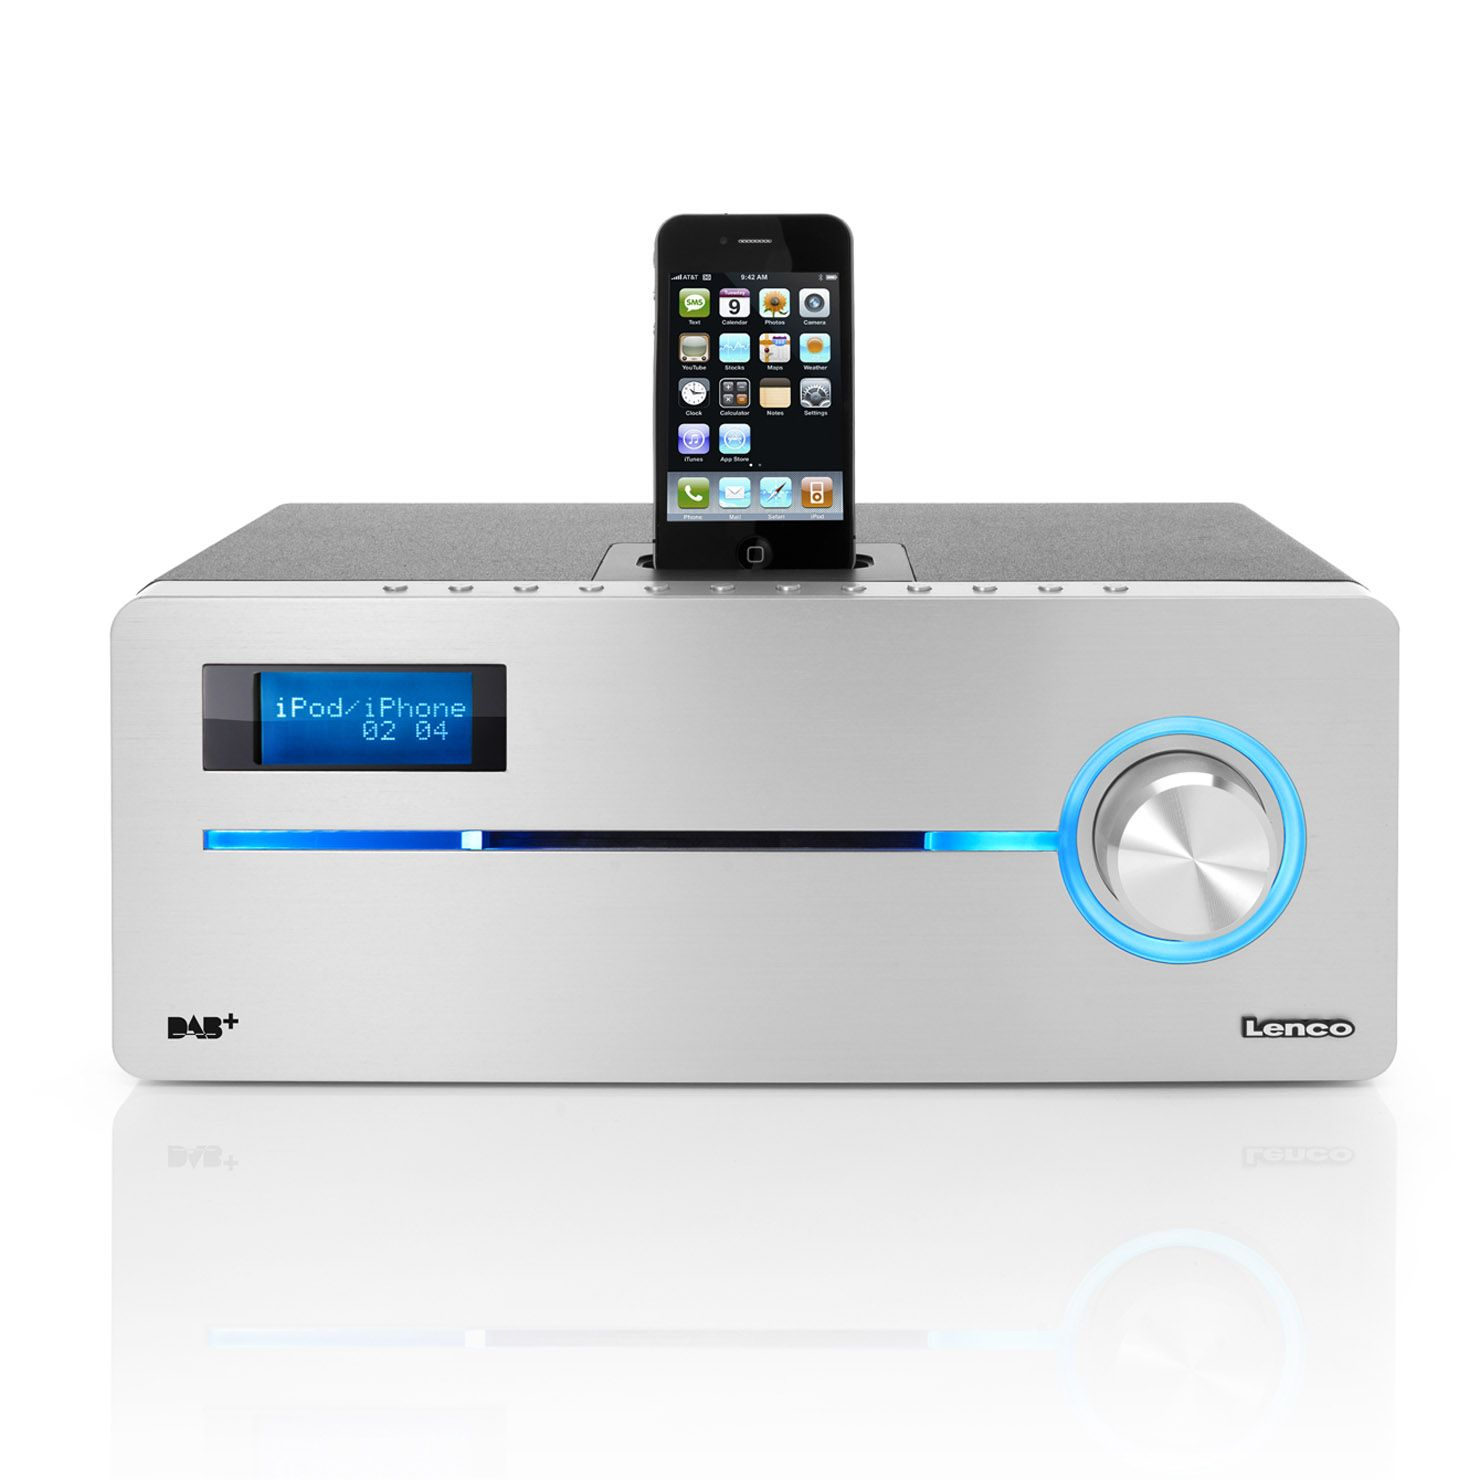 new product 0ff16 ebb94 Lenco iPod/iPhone Docking station with DAB+, FM Radio and CD/MP3 ...